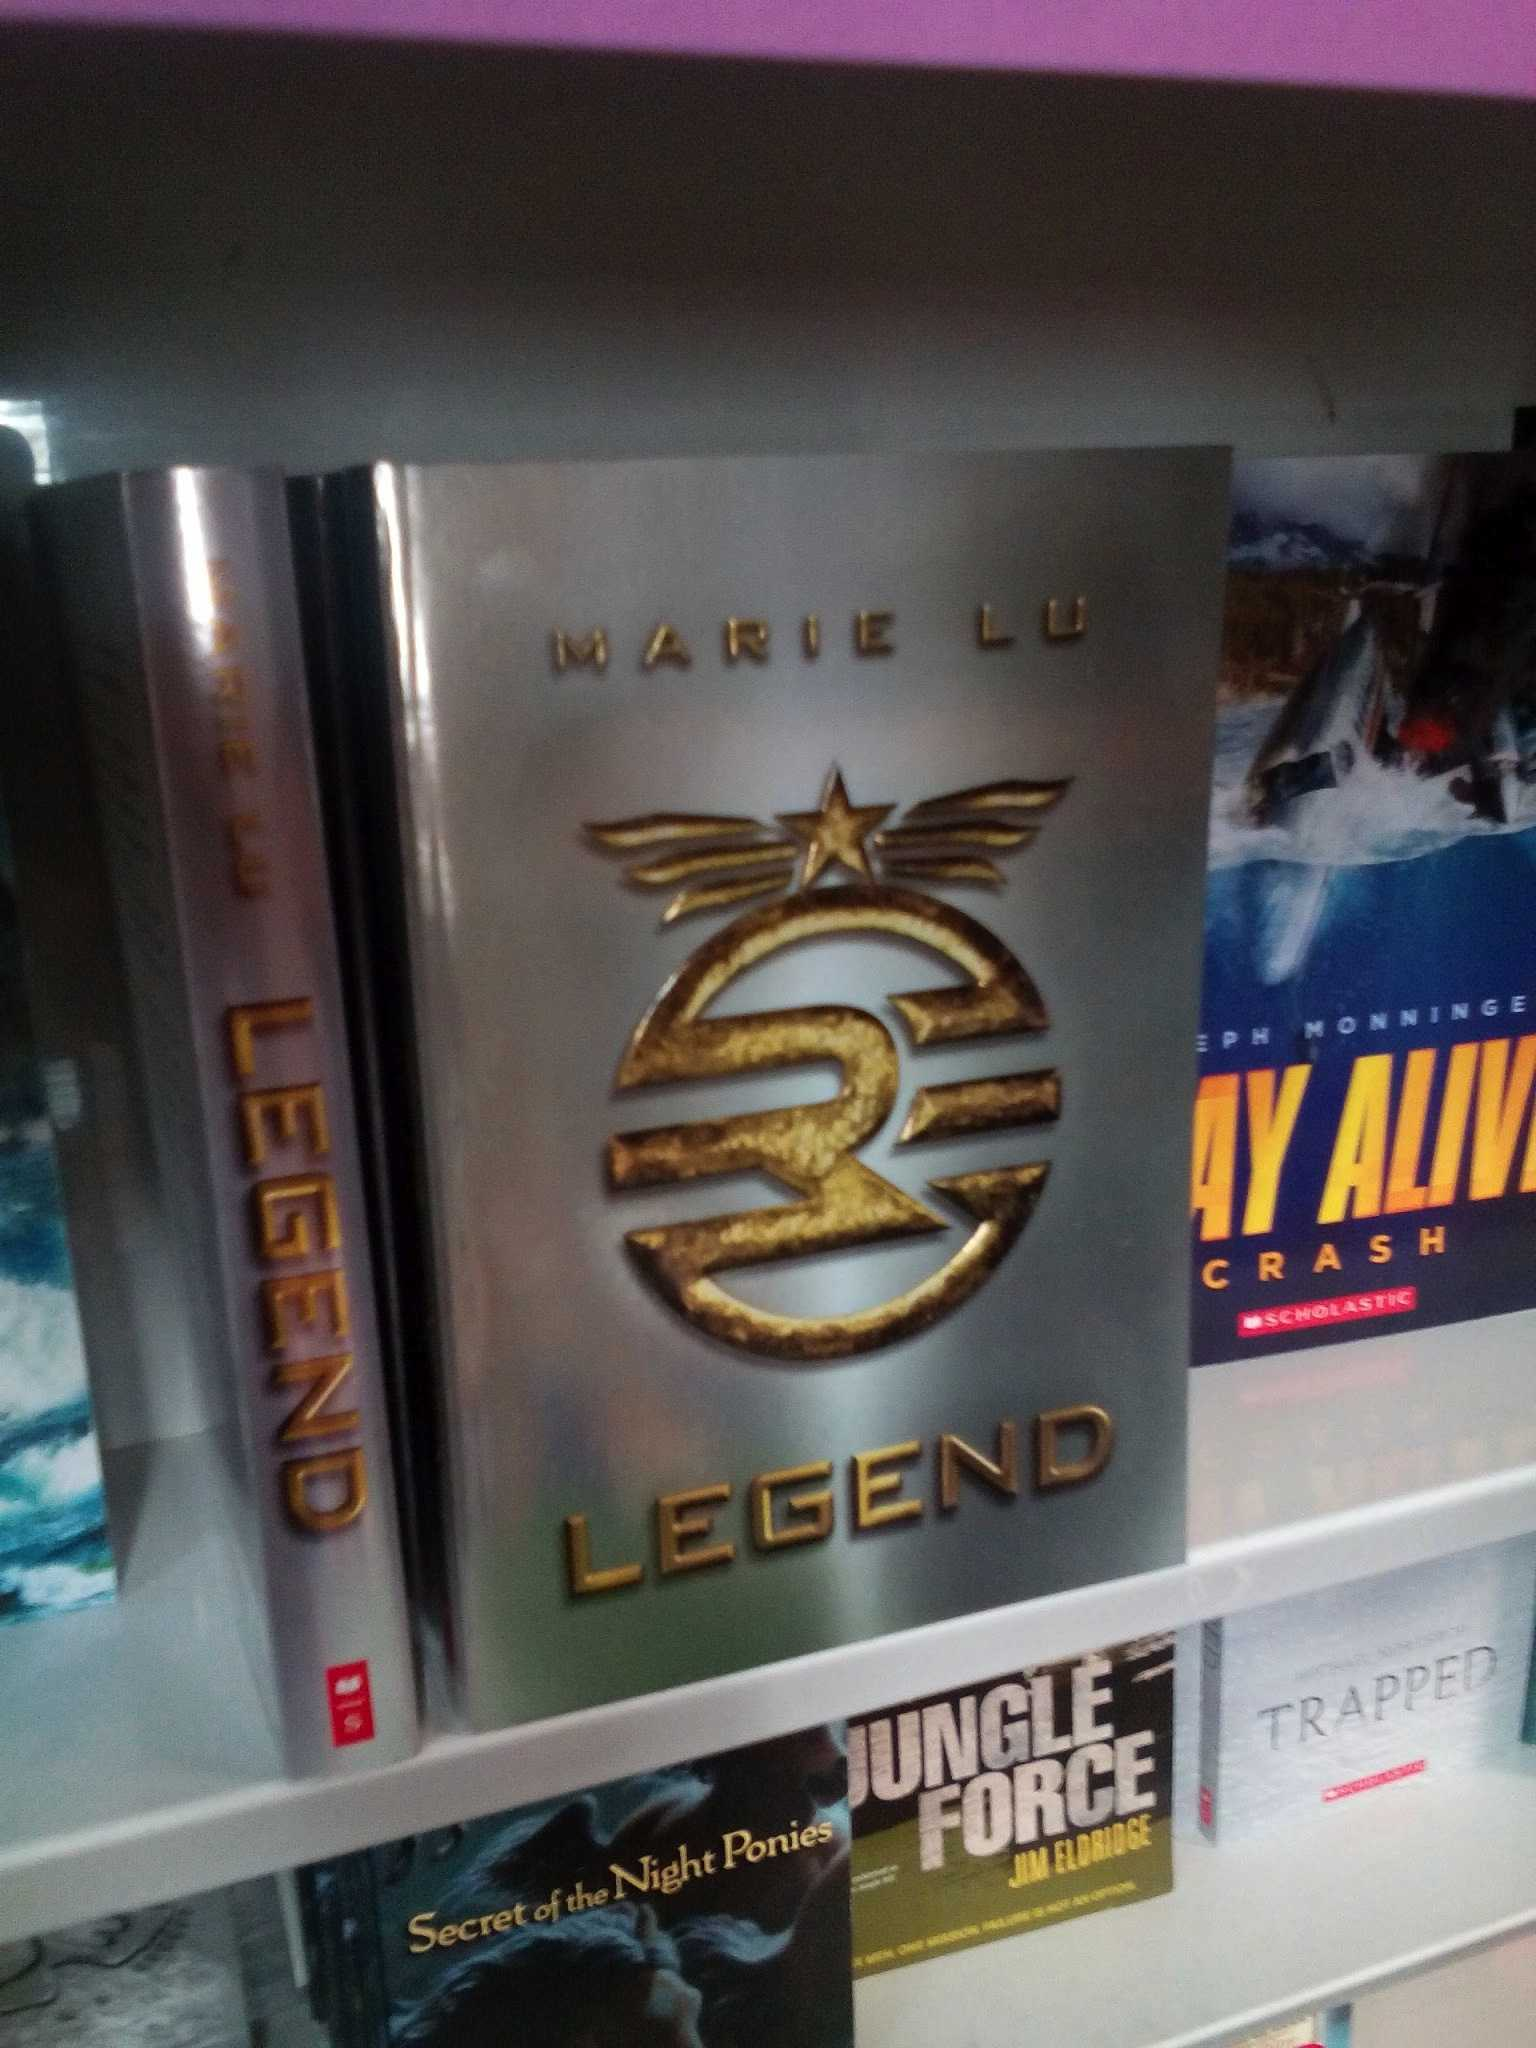 """Legend"" is available at the Scholastic Book Fair, running from May 12 to May 15. Marie Lu published this novel in 2011."